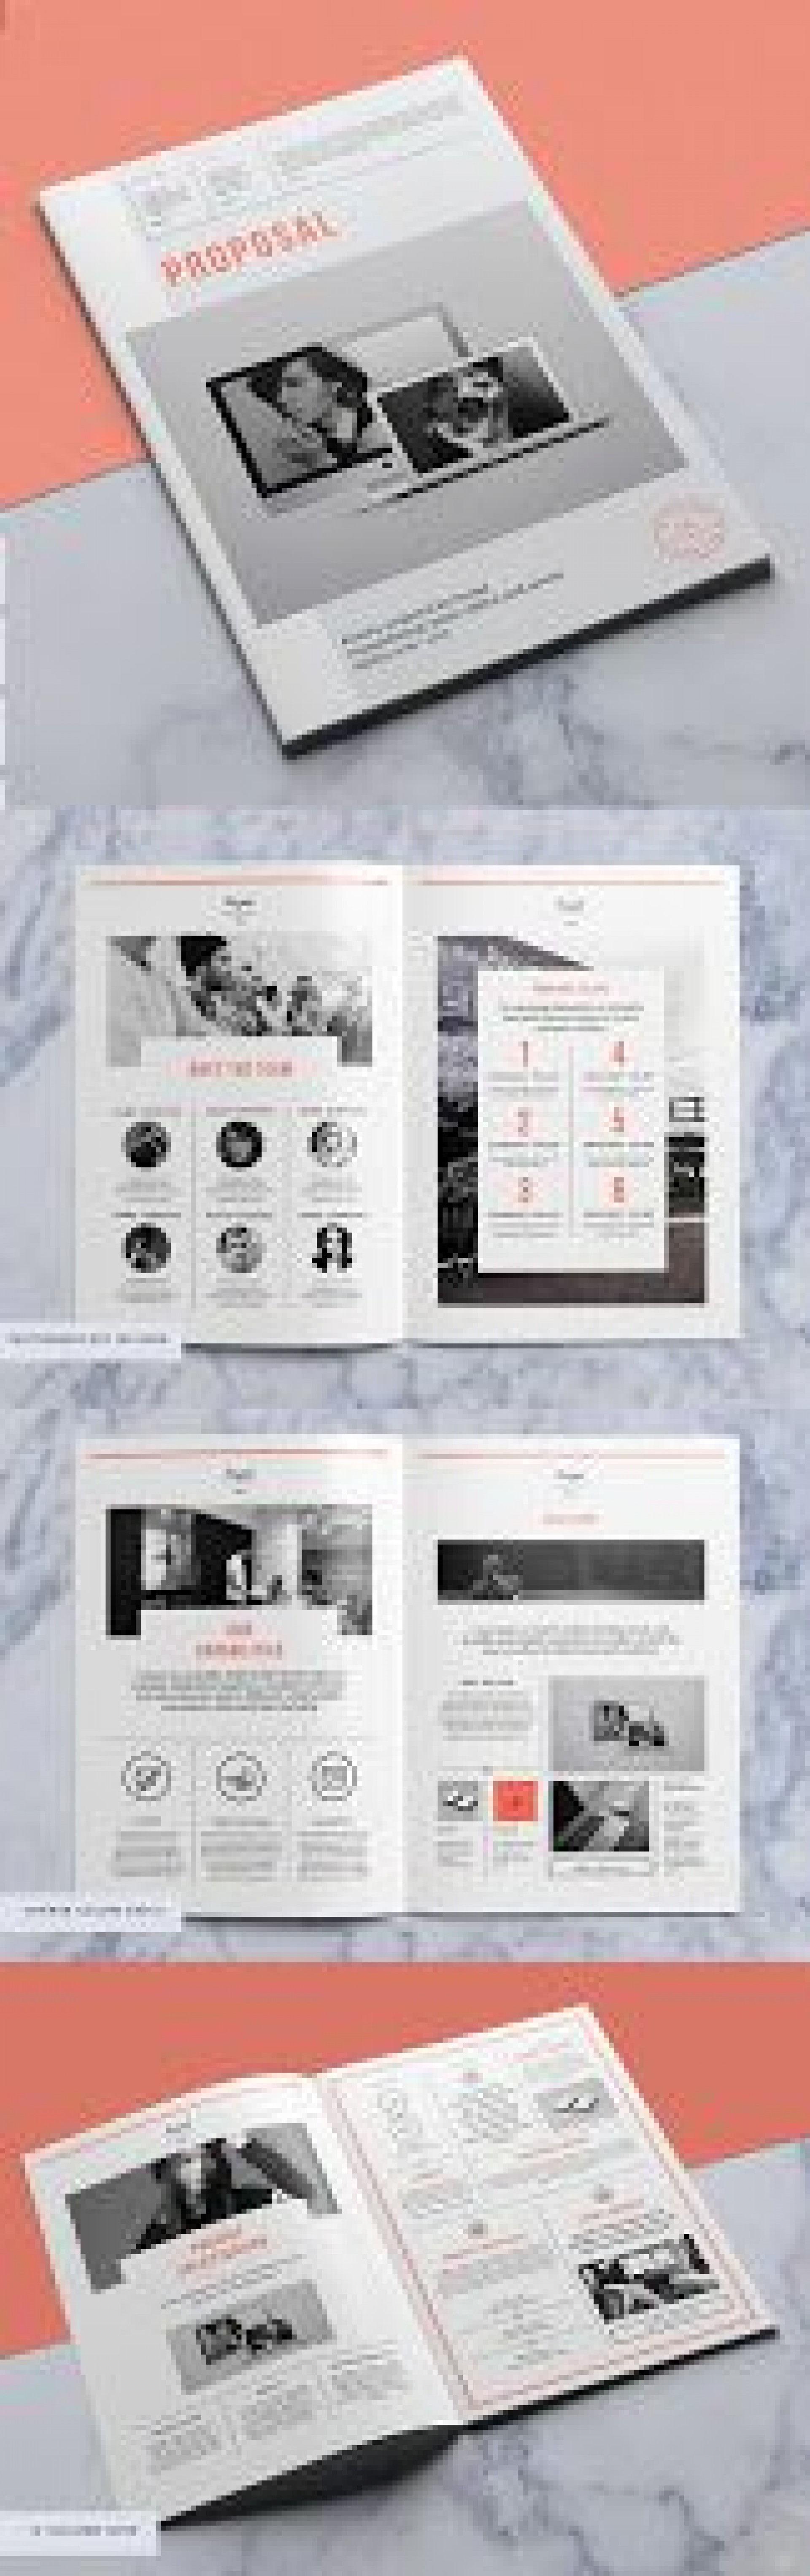 000 Simple Free Busines Proposal Template Indesign Design 1920